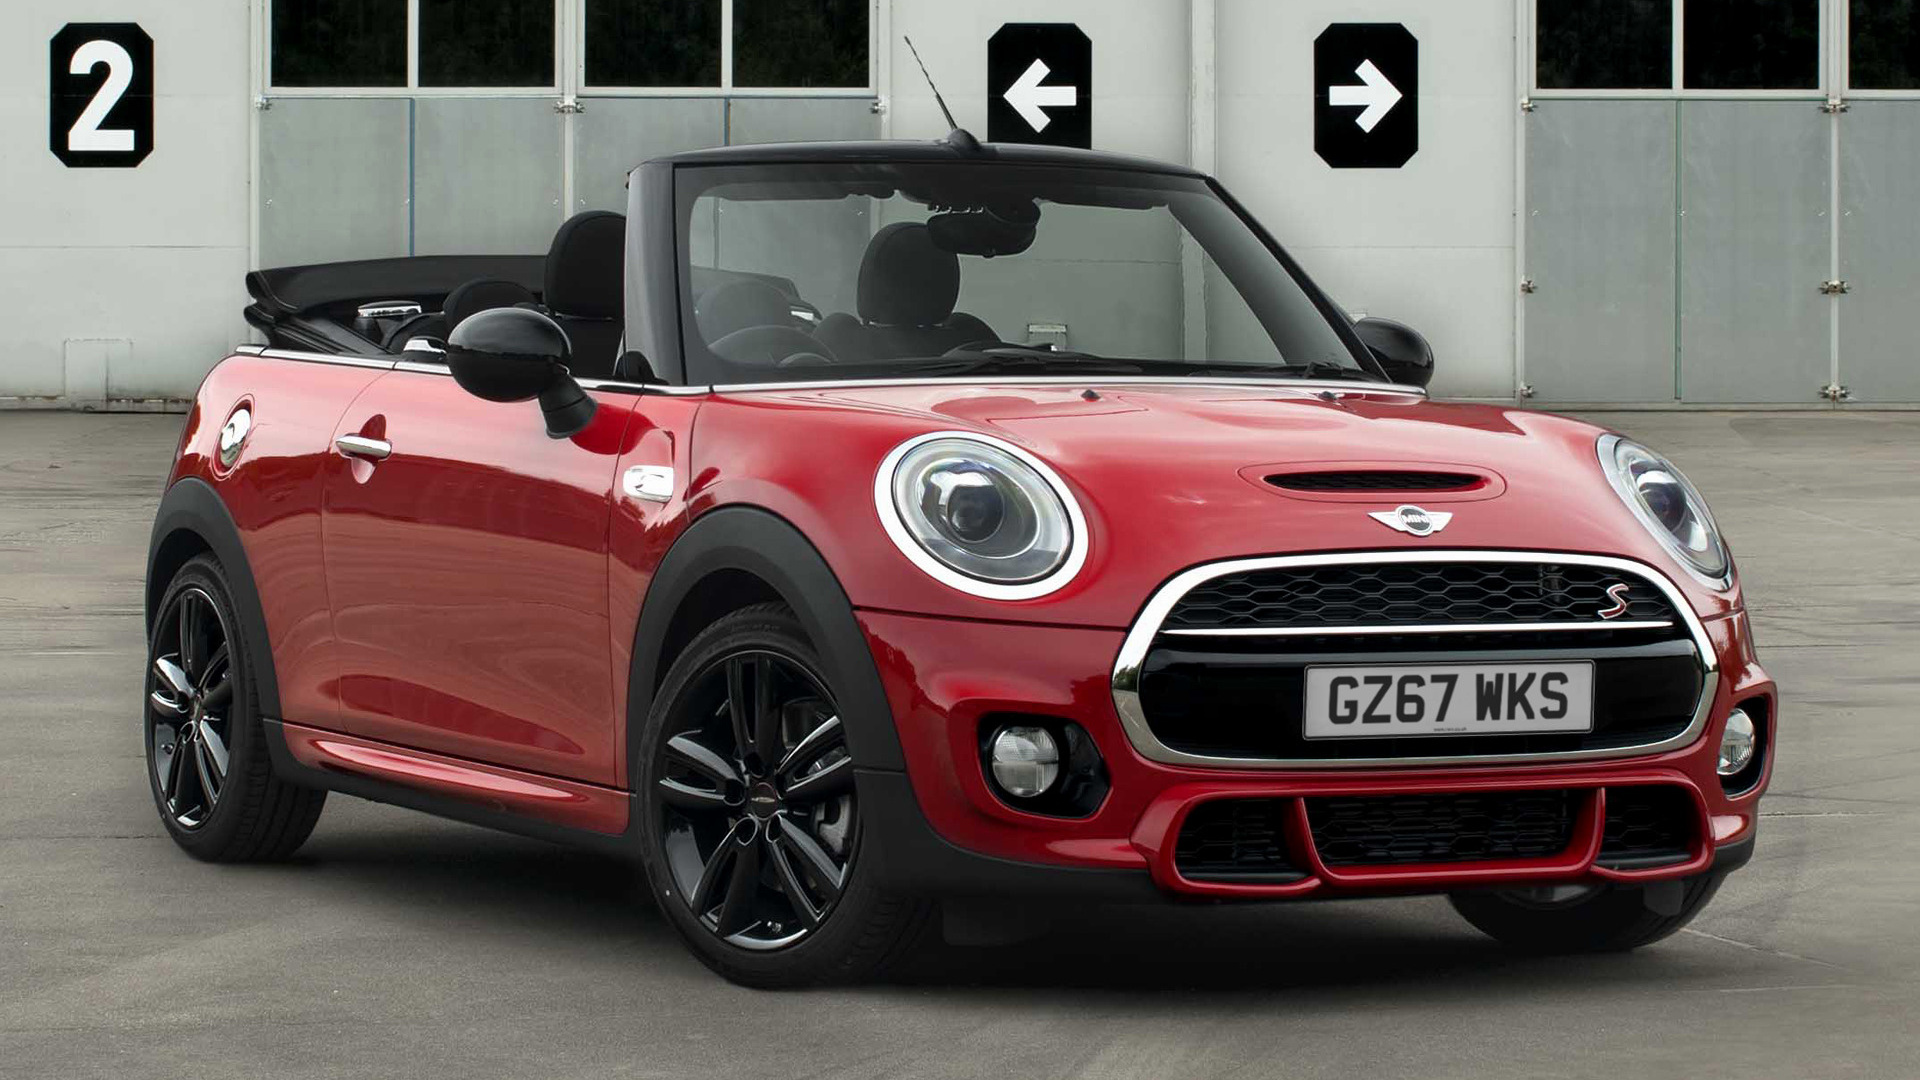 mini cooper s convertible works 210 2017 uk wallpapers and hd images car pixel. Black Bedroom Furniture Sets. Home Design Ideas